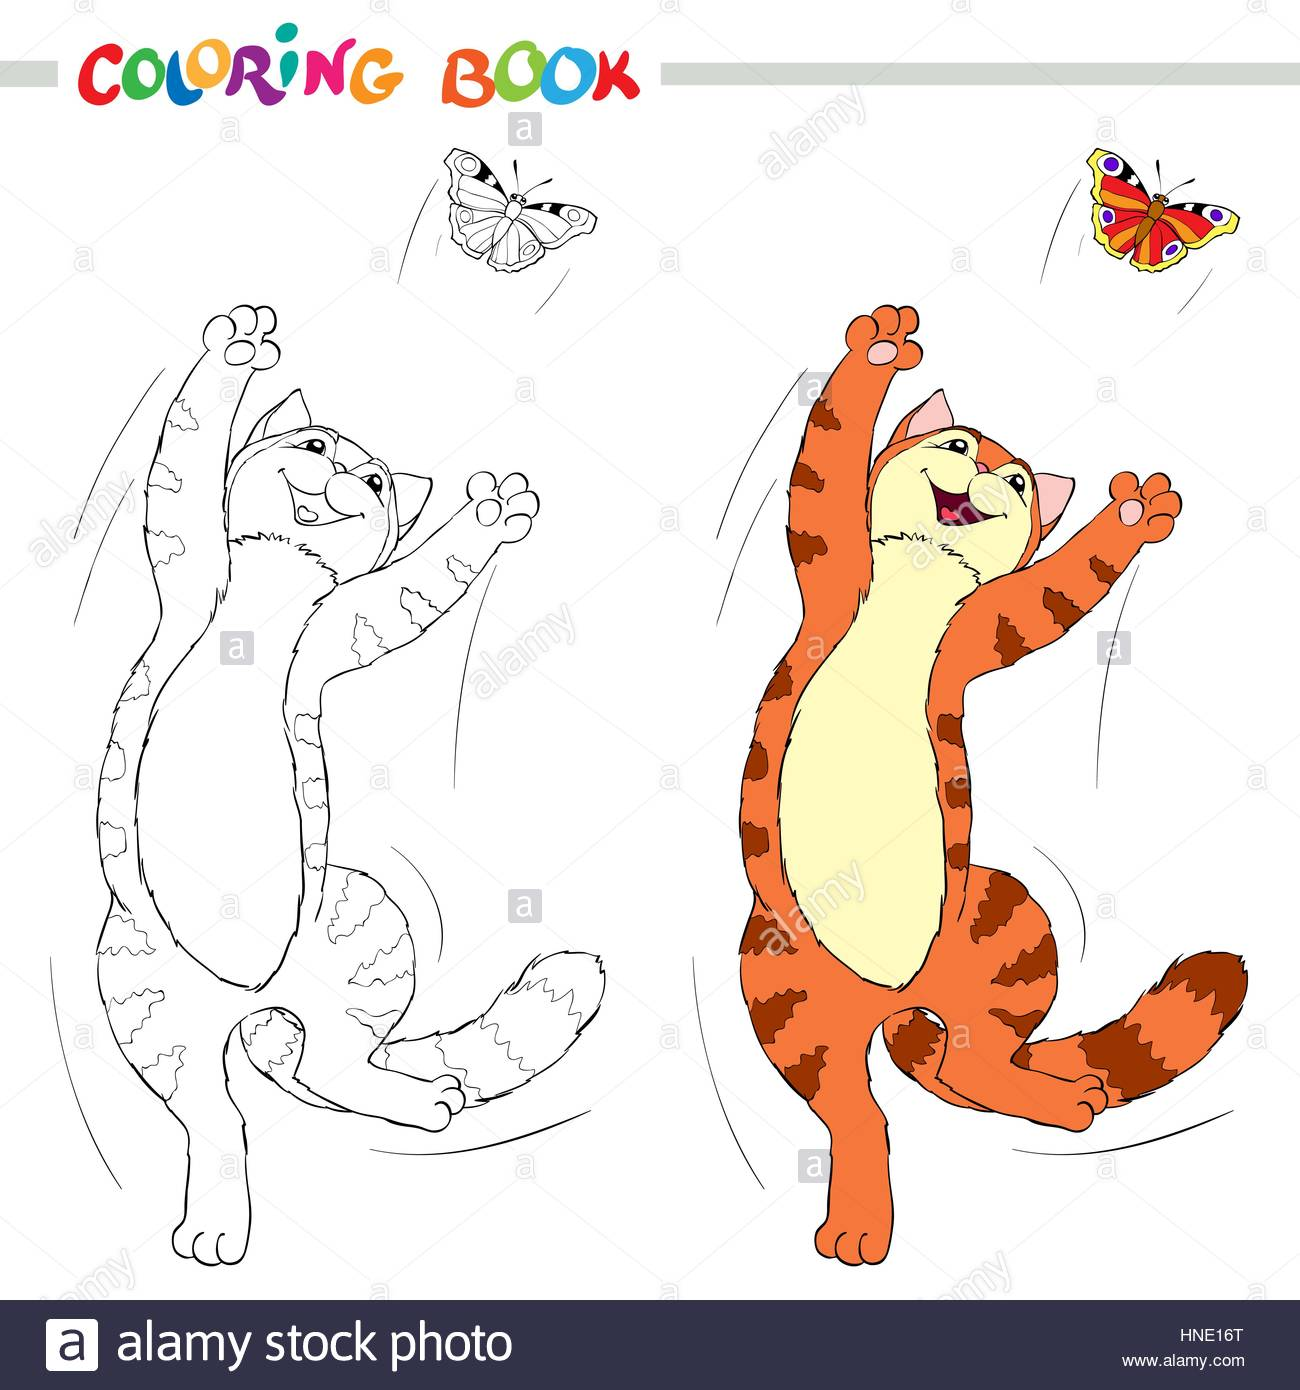 coloring book or page red cat jumping over the butterflies on white background vector